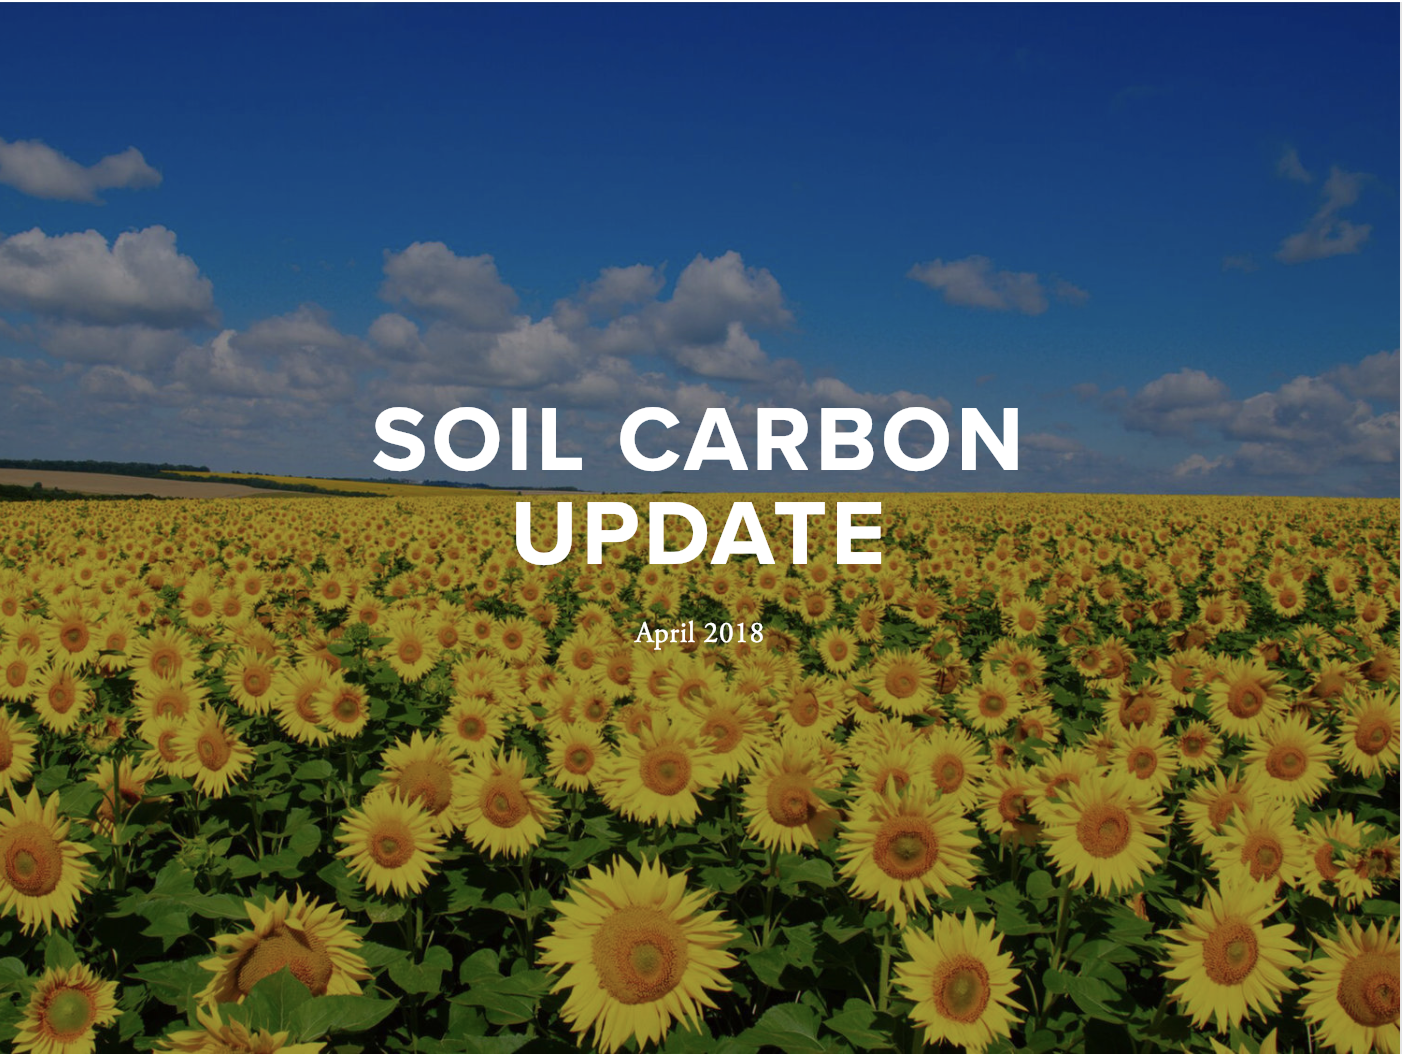 April 2018 Update - This update includes features on reports and studies, conferences, news coverage and emerging efforts